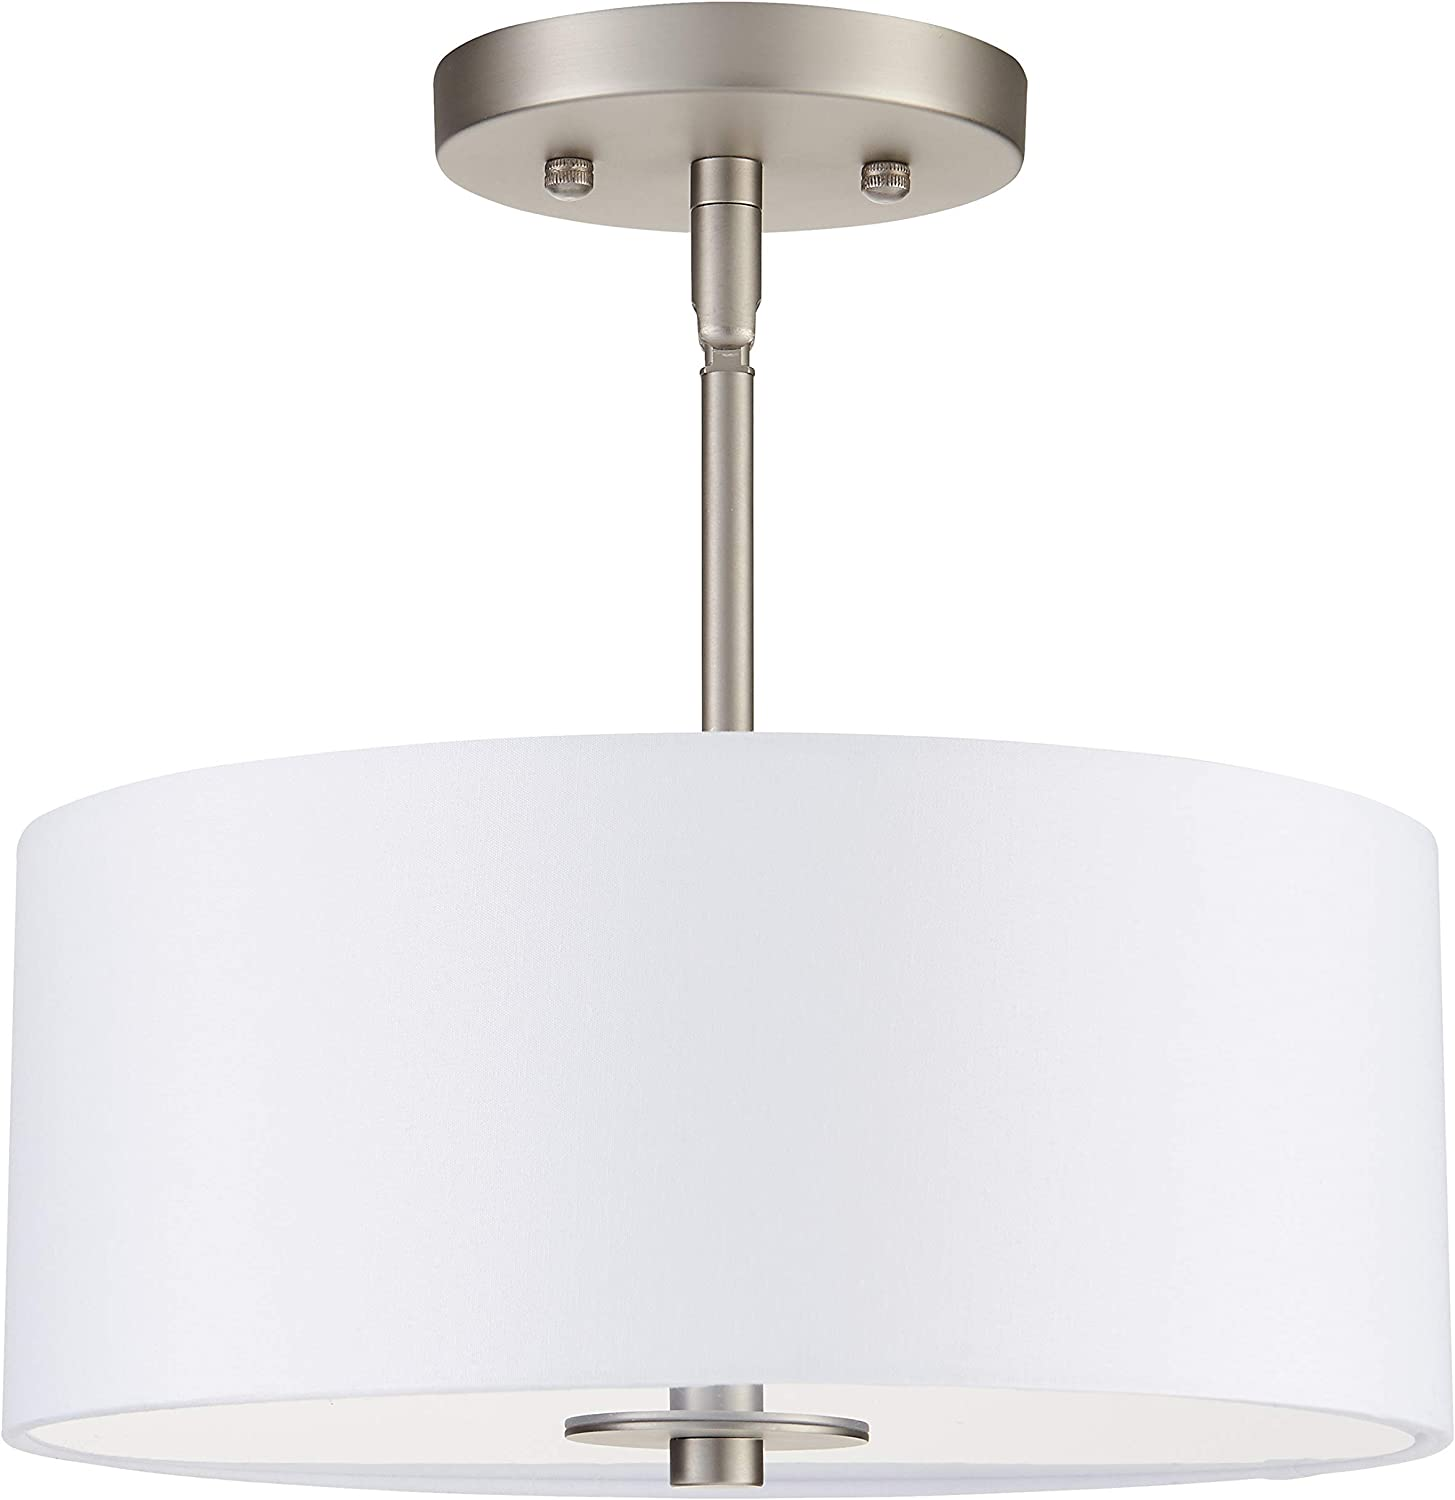 Cosello Brushed Nickel Semi Flush 67% OFF of fixed price Light Ceiling LL-CL185 Long Beach Mall Mount